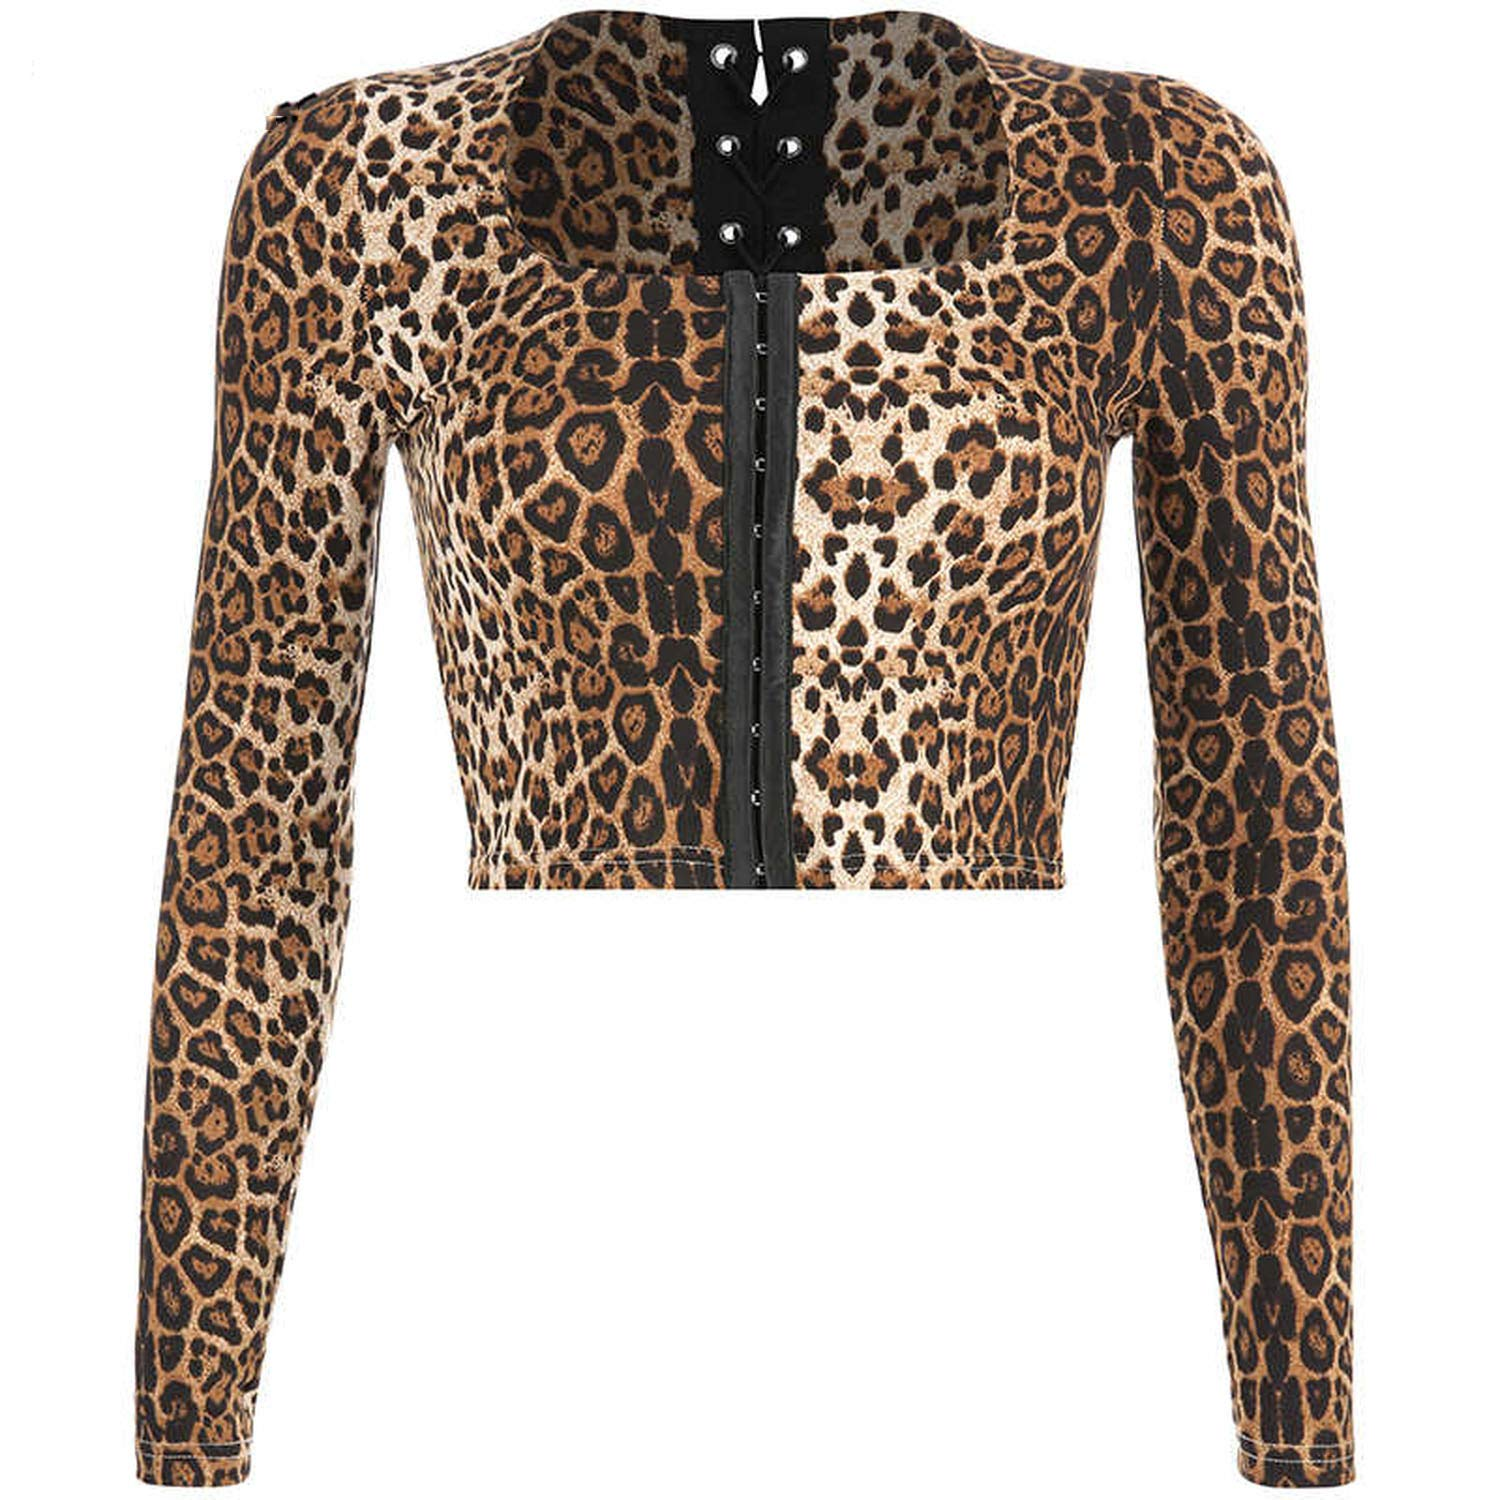 CHRISTY Y Womens Casual Leopard Skinny Tees Tops Long Sleeve Short Square Collar Female Shirts Tee Shirt